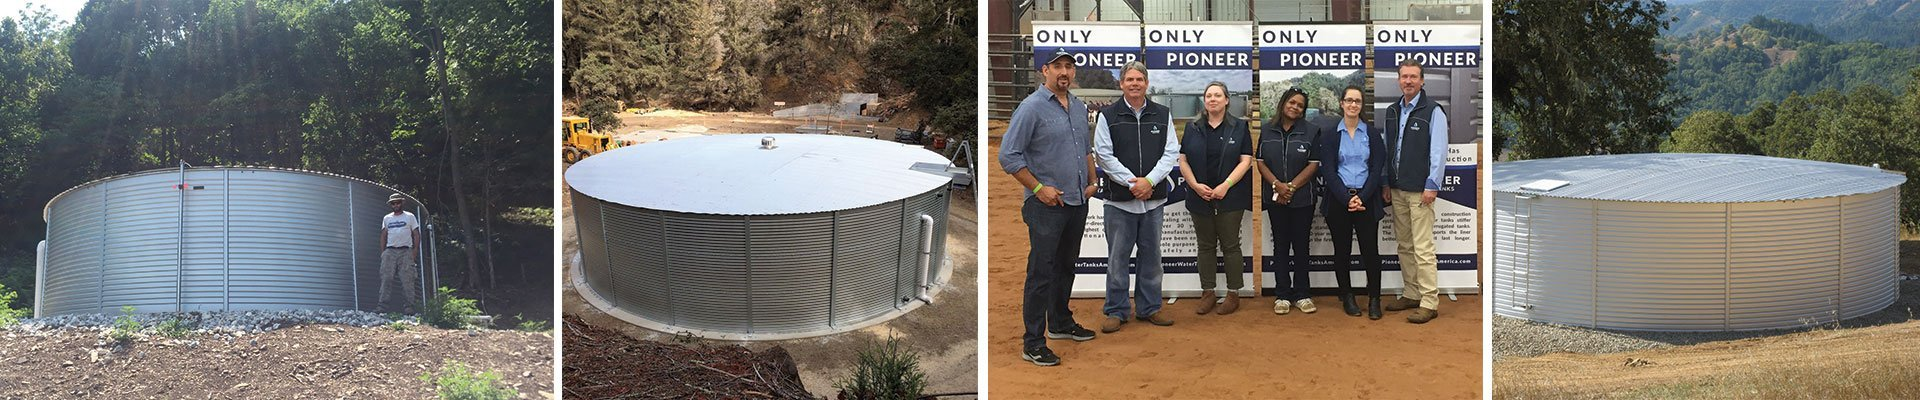 Fire protection water tank news